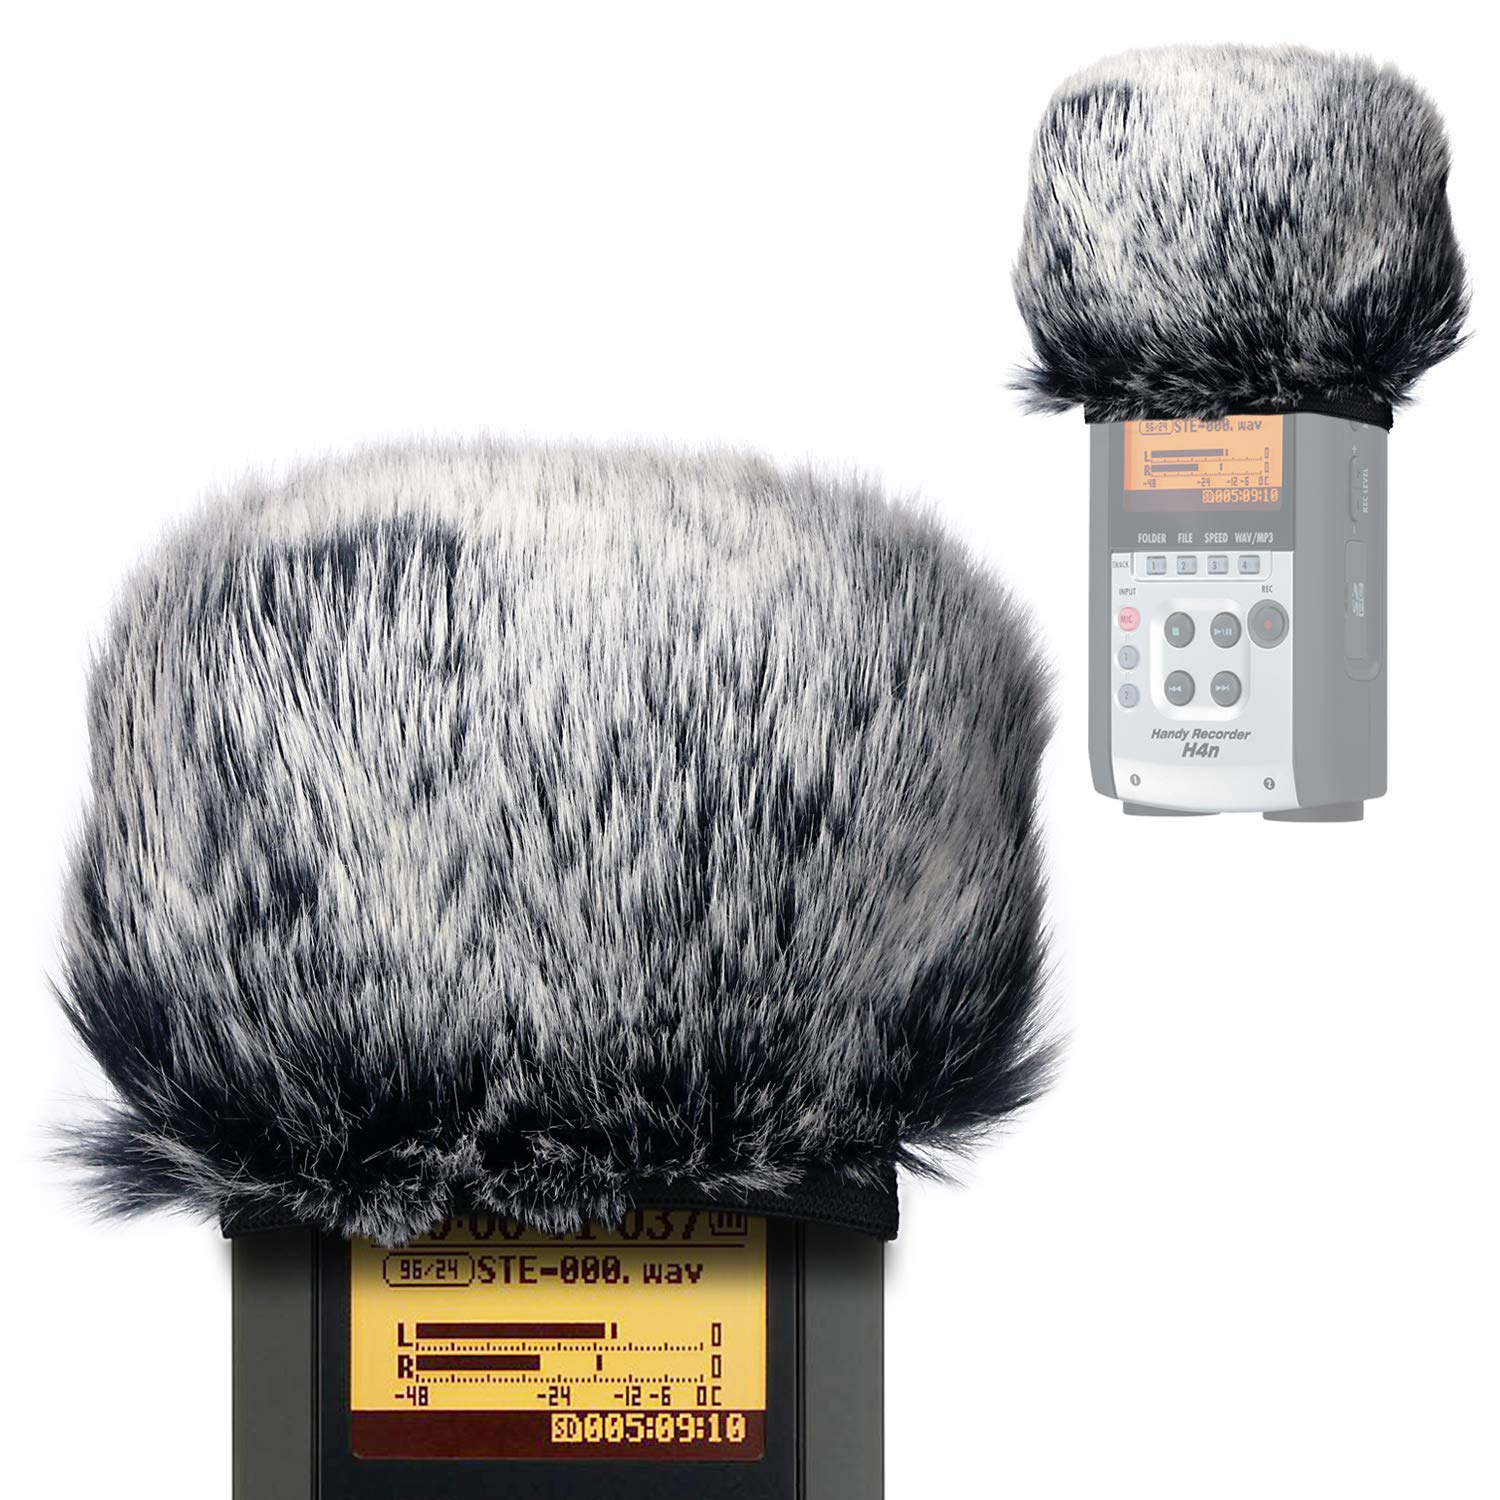 Furry Outdoor Microphone Windscreen Muff for Zoom H4N Pro Portable Digital Recorders, Zoom Mic Windscreen Fur Windshield Dead Cat Wind Cover Pop Filter by YOUSHARES